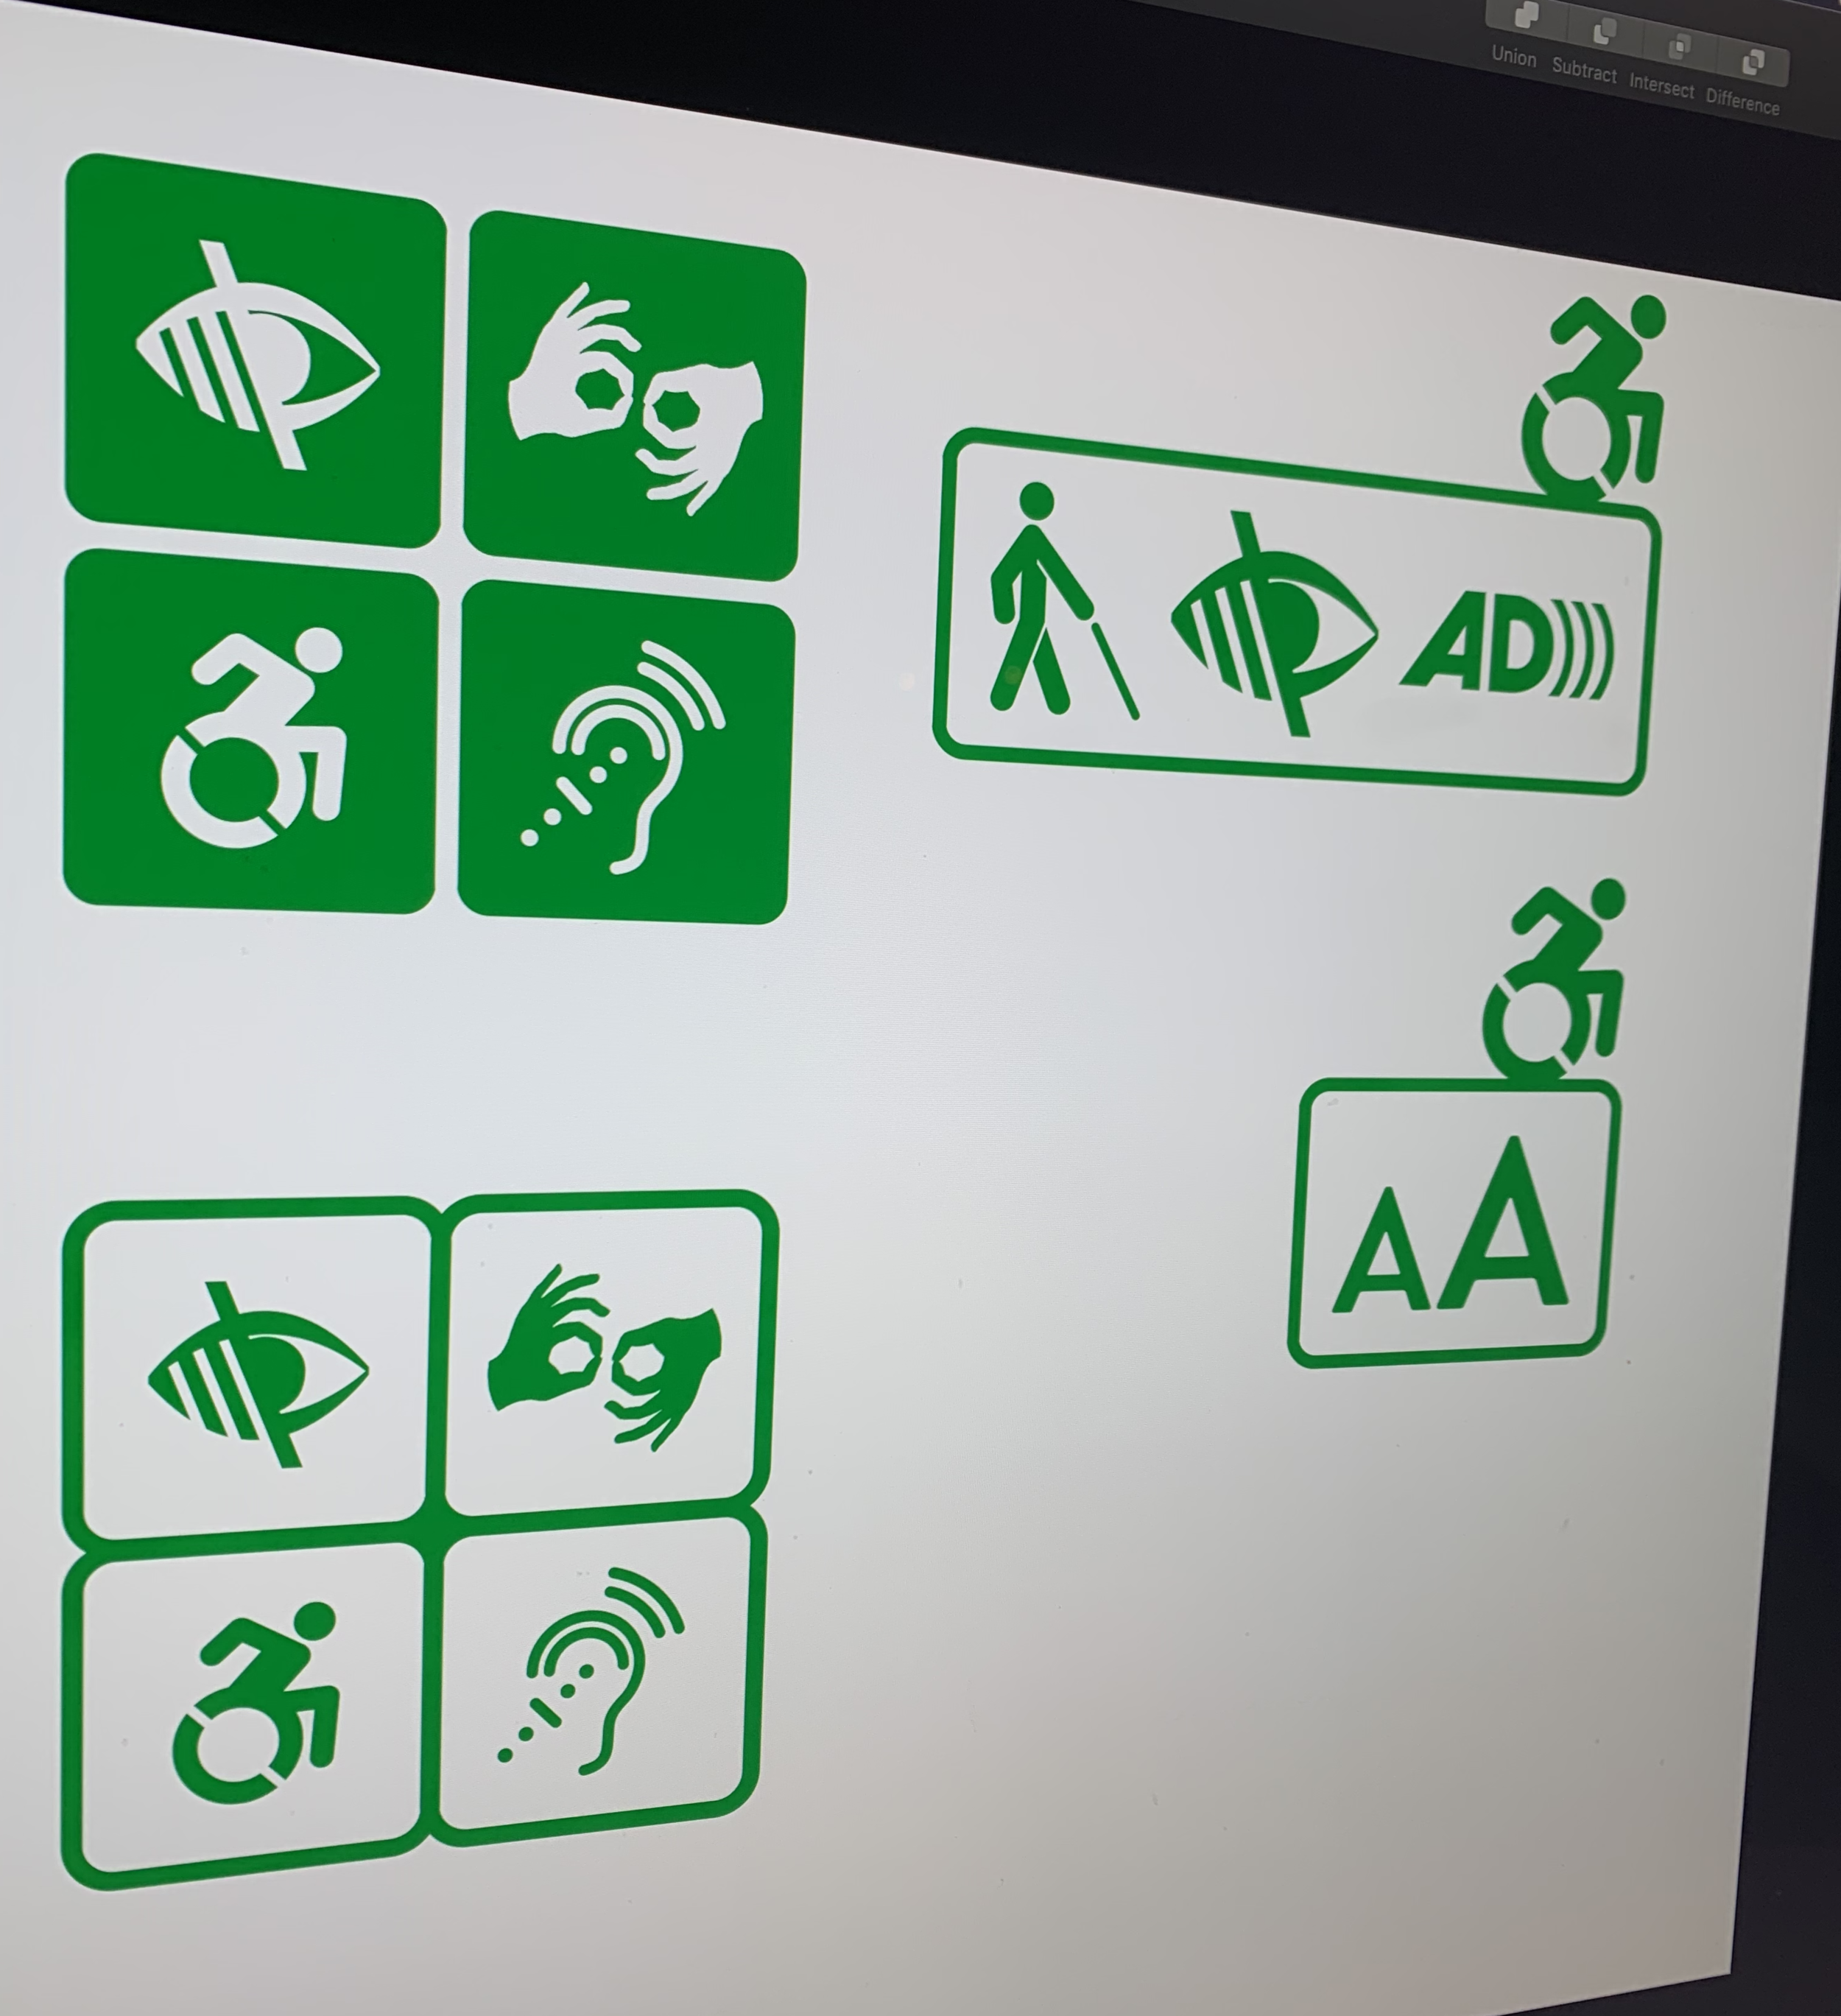 Accessibility_icons.png